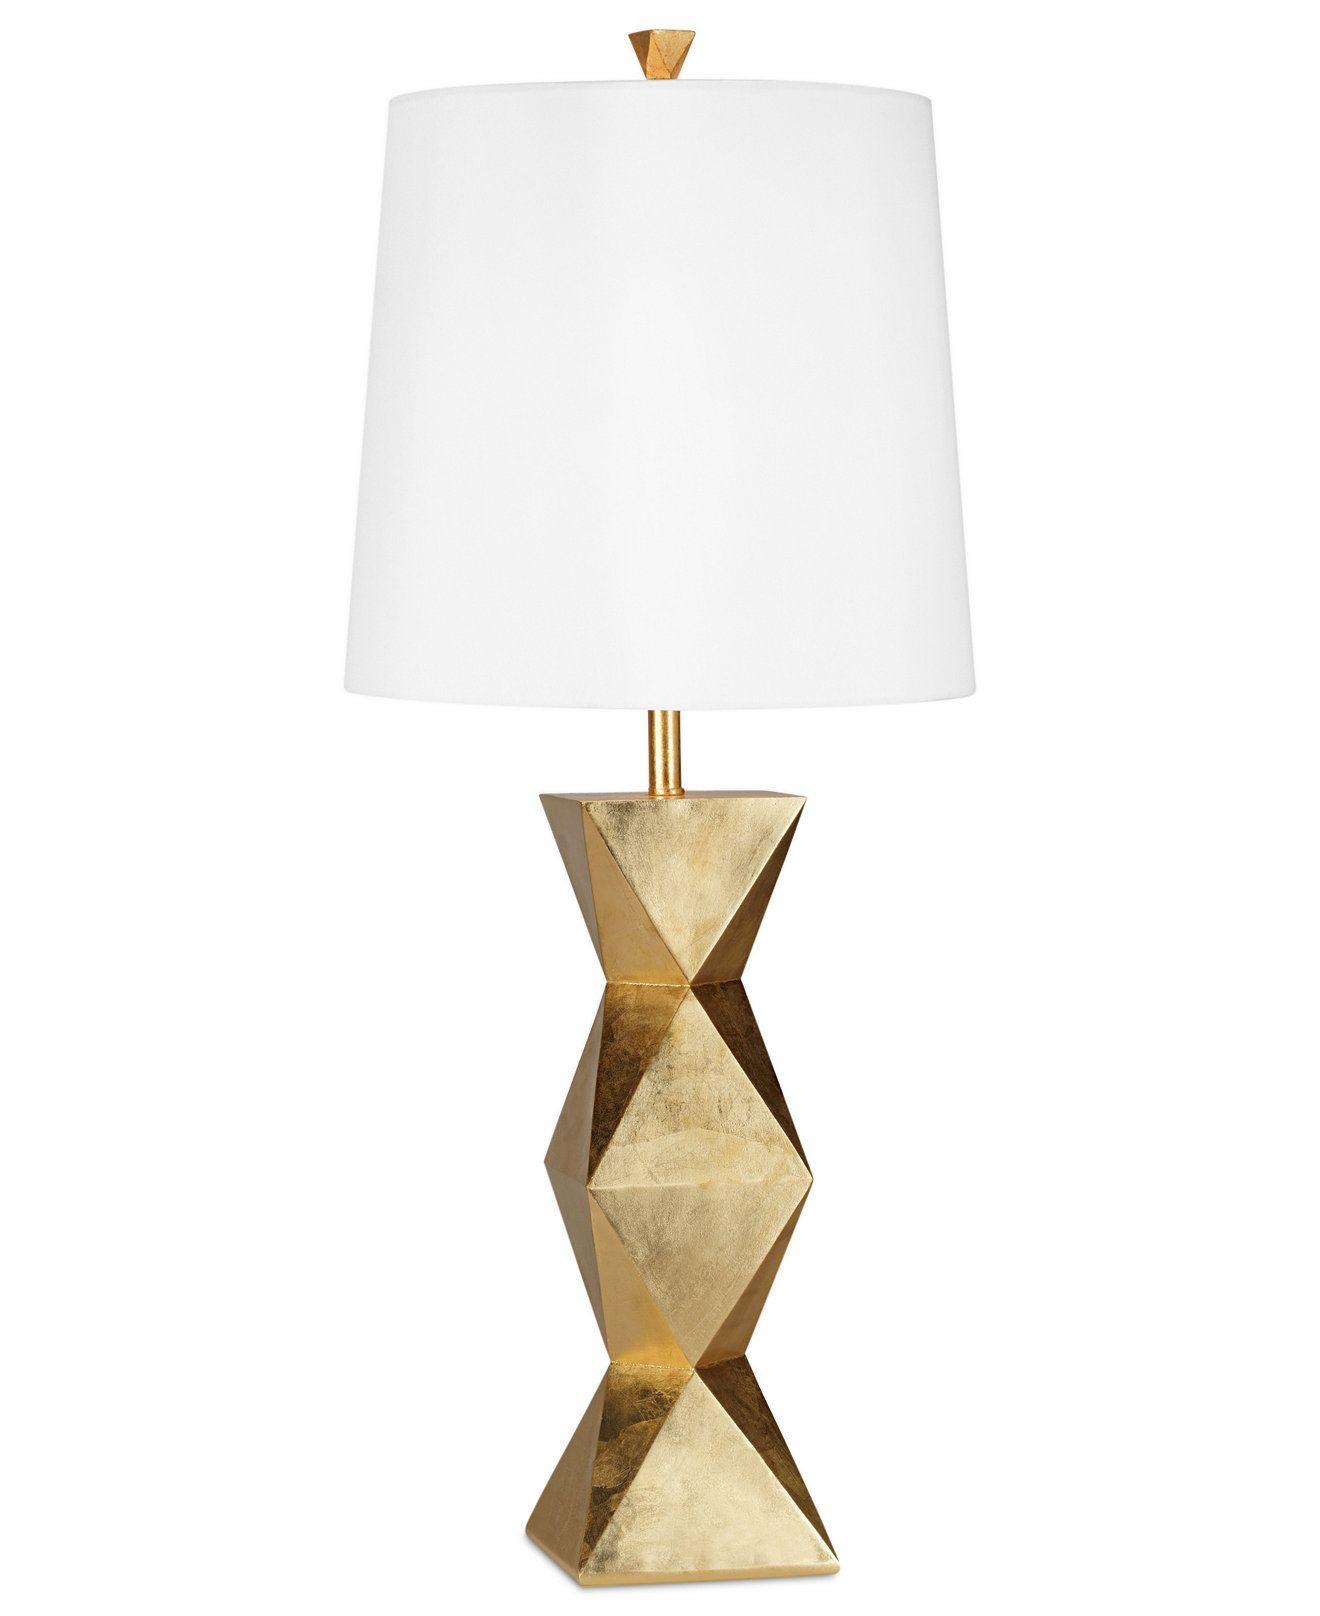 Pacific coast ripley table lamp pacific coast table lamp ripley table lamps for the home macys aloadofball Images